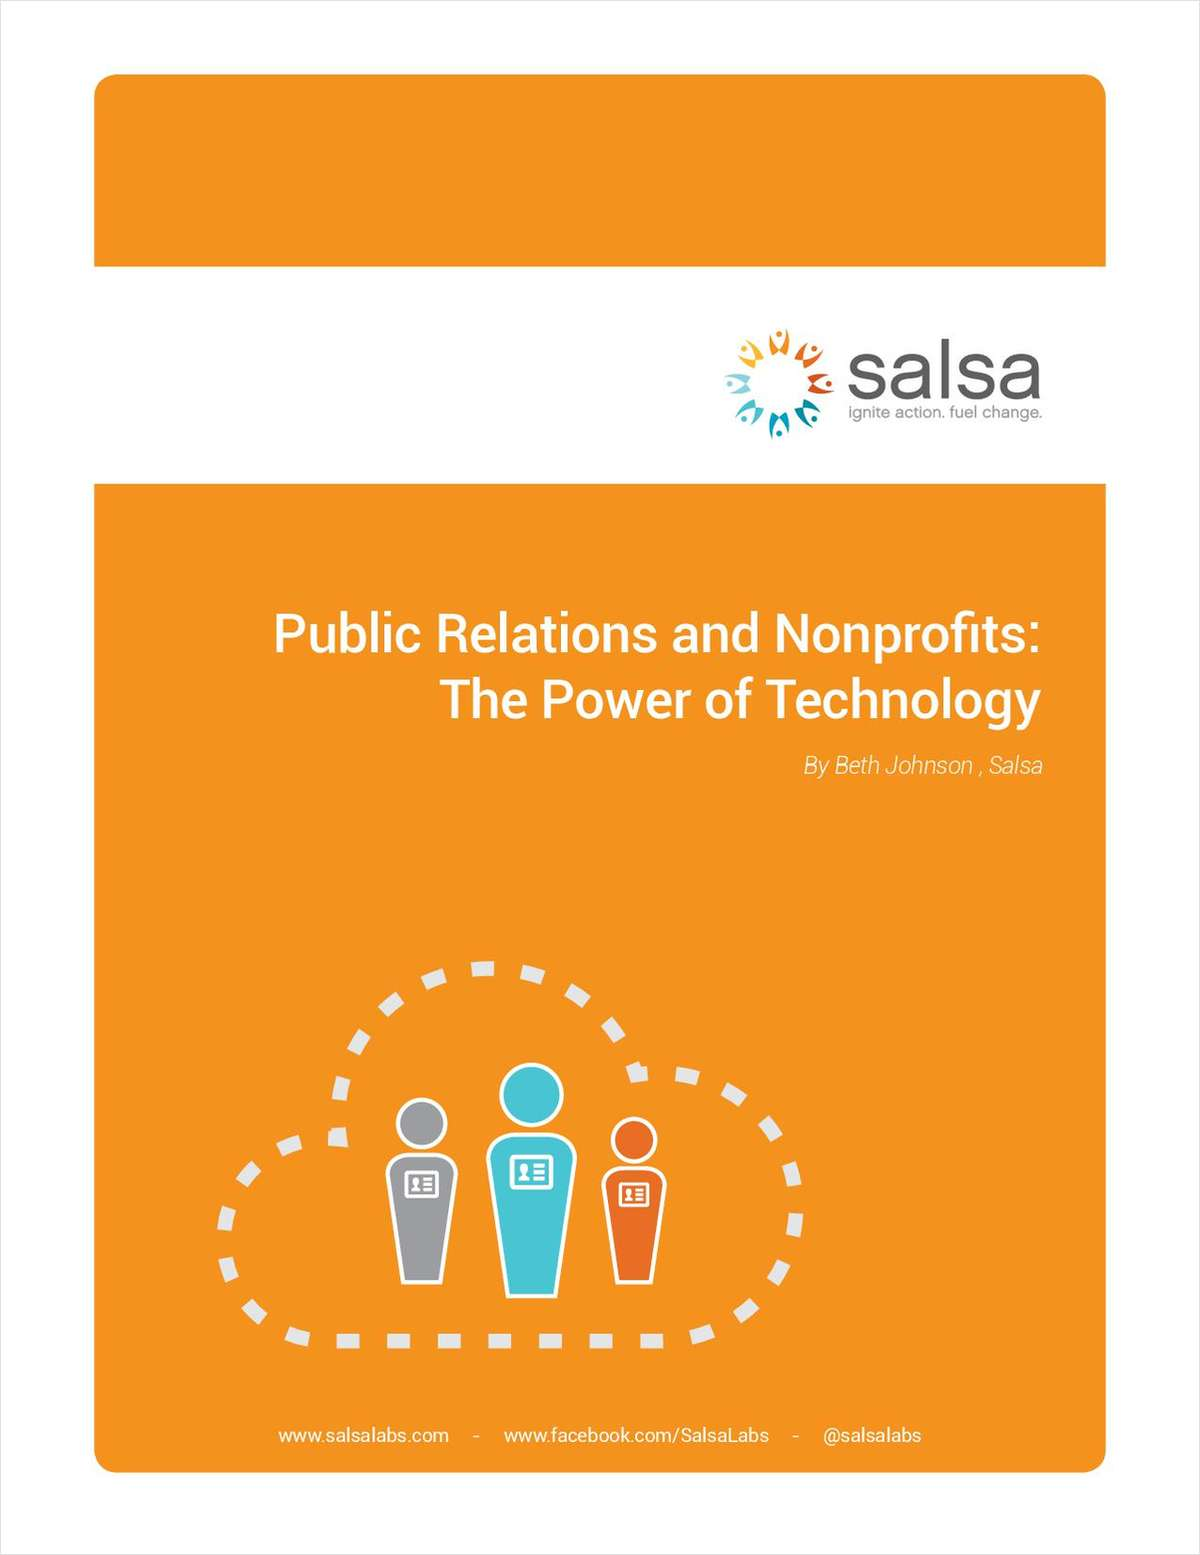 Public Relations and Nonprofits: The Power of Technology